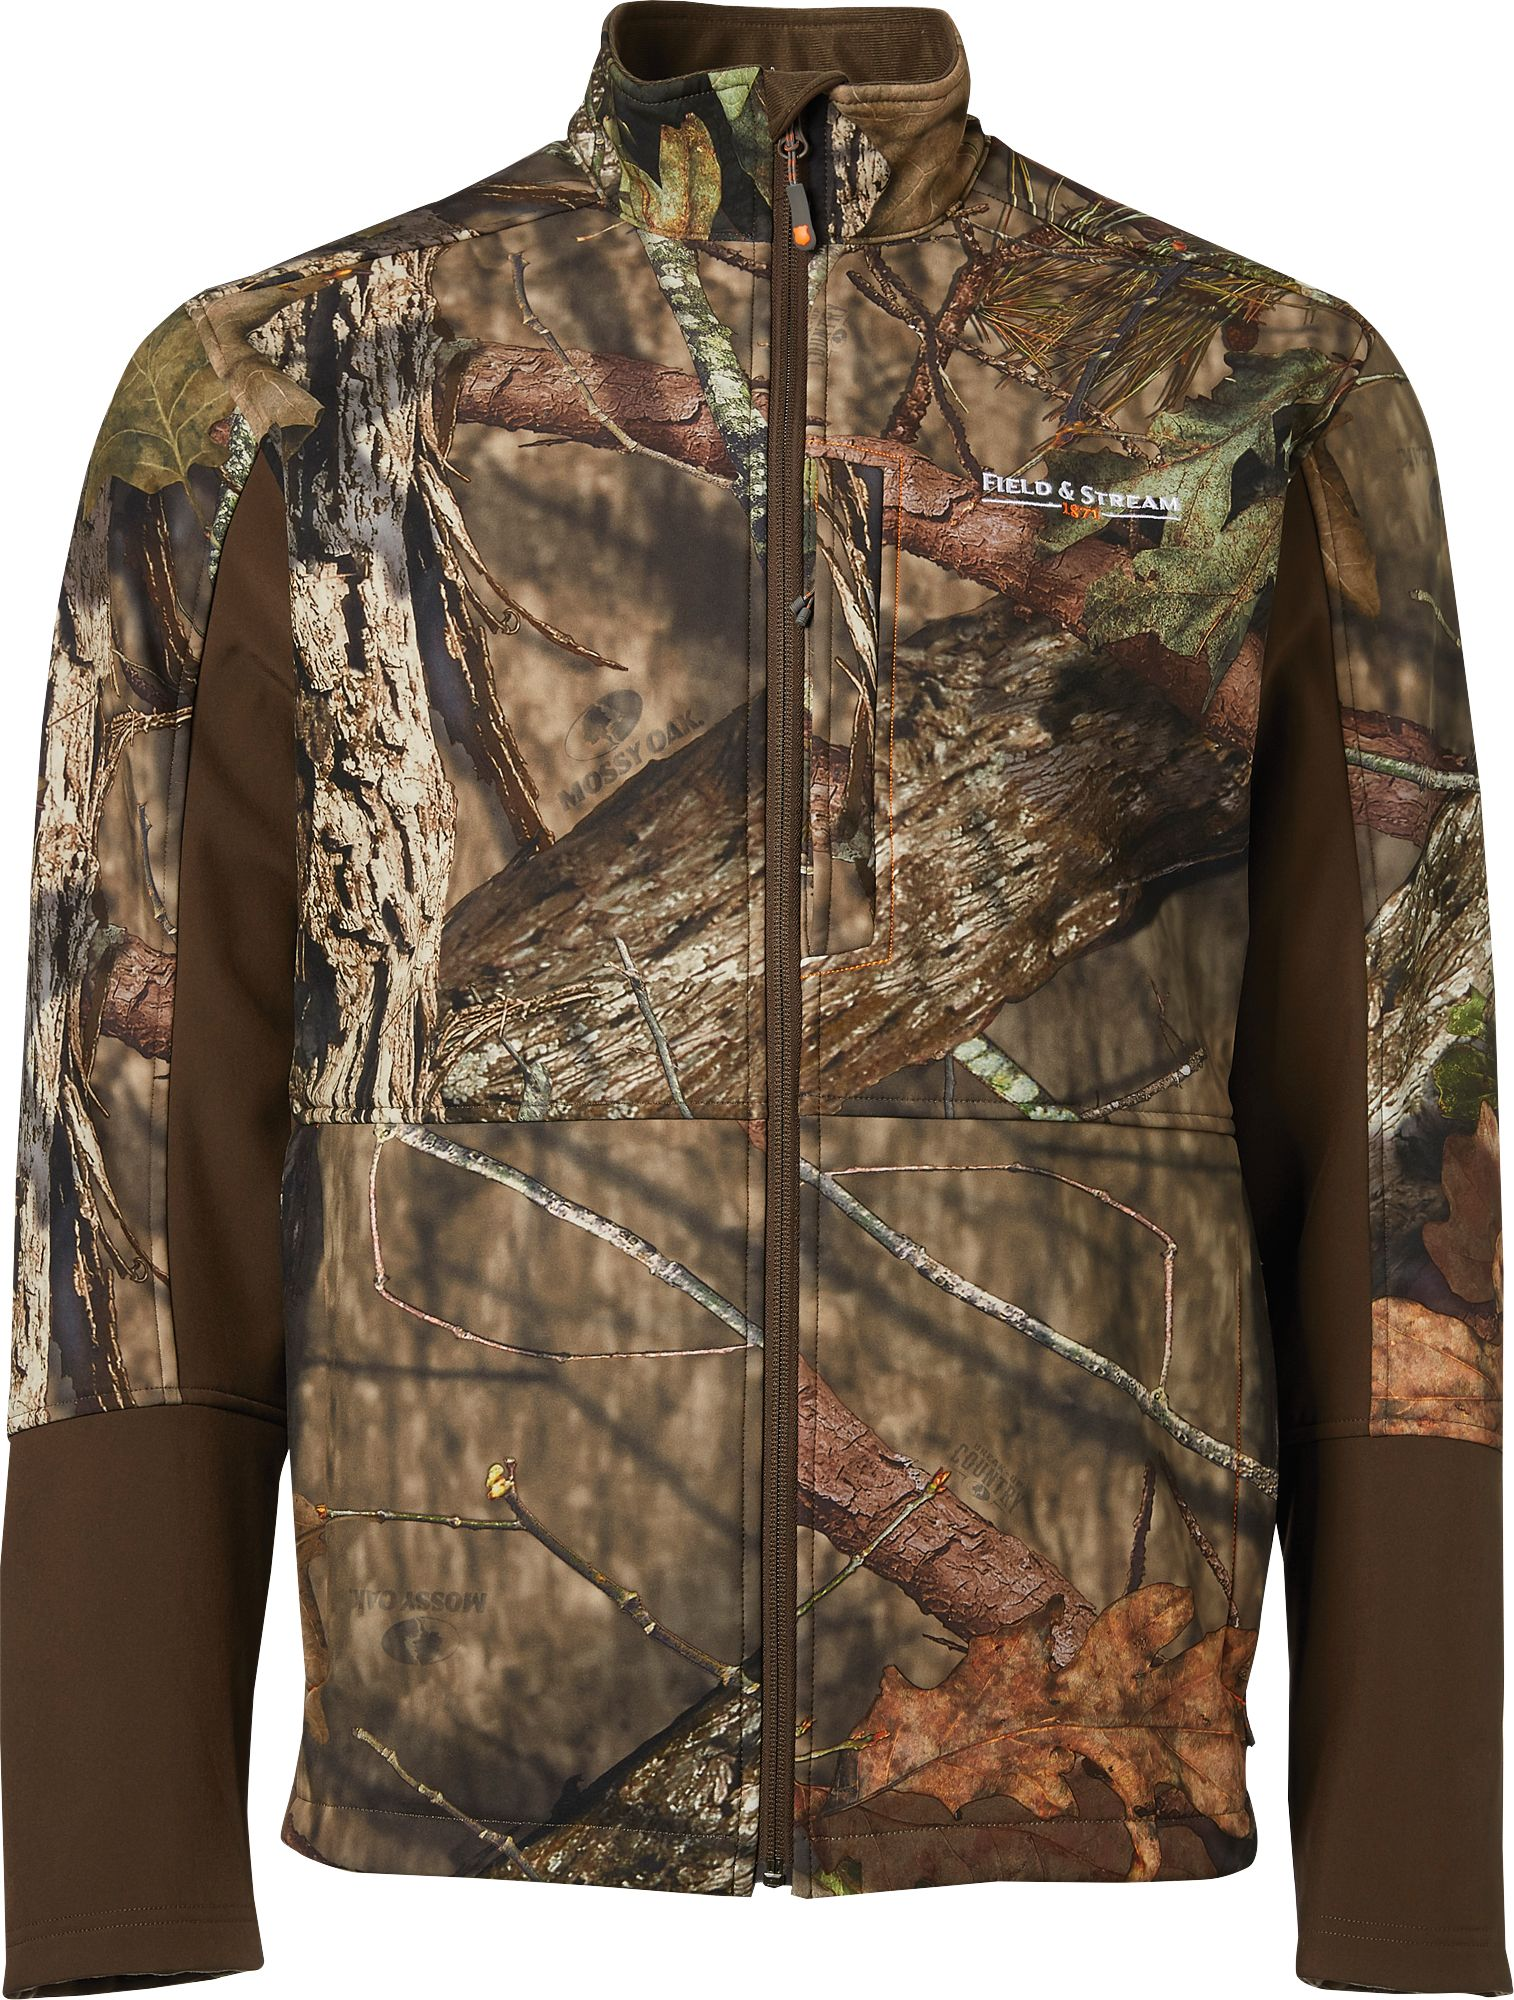 Field & Stream Men's Softshell Hunting Jacket, Size: XXXL, Mossy Oak Brk Up Country thumbnail